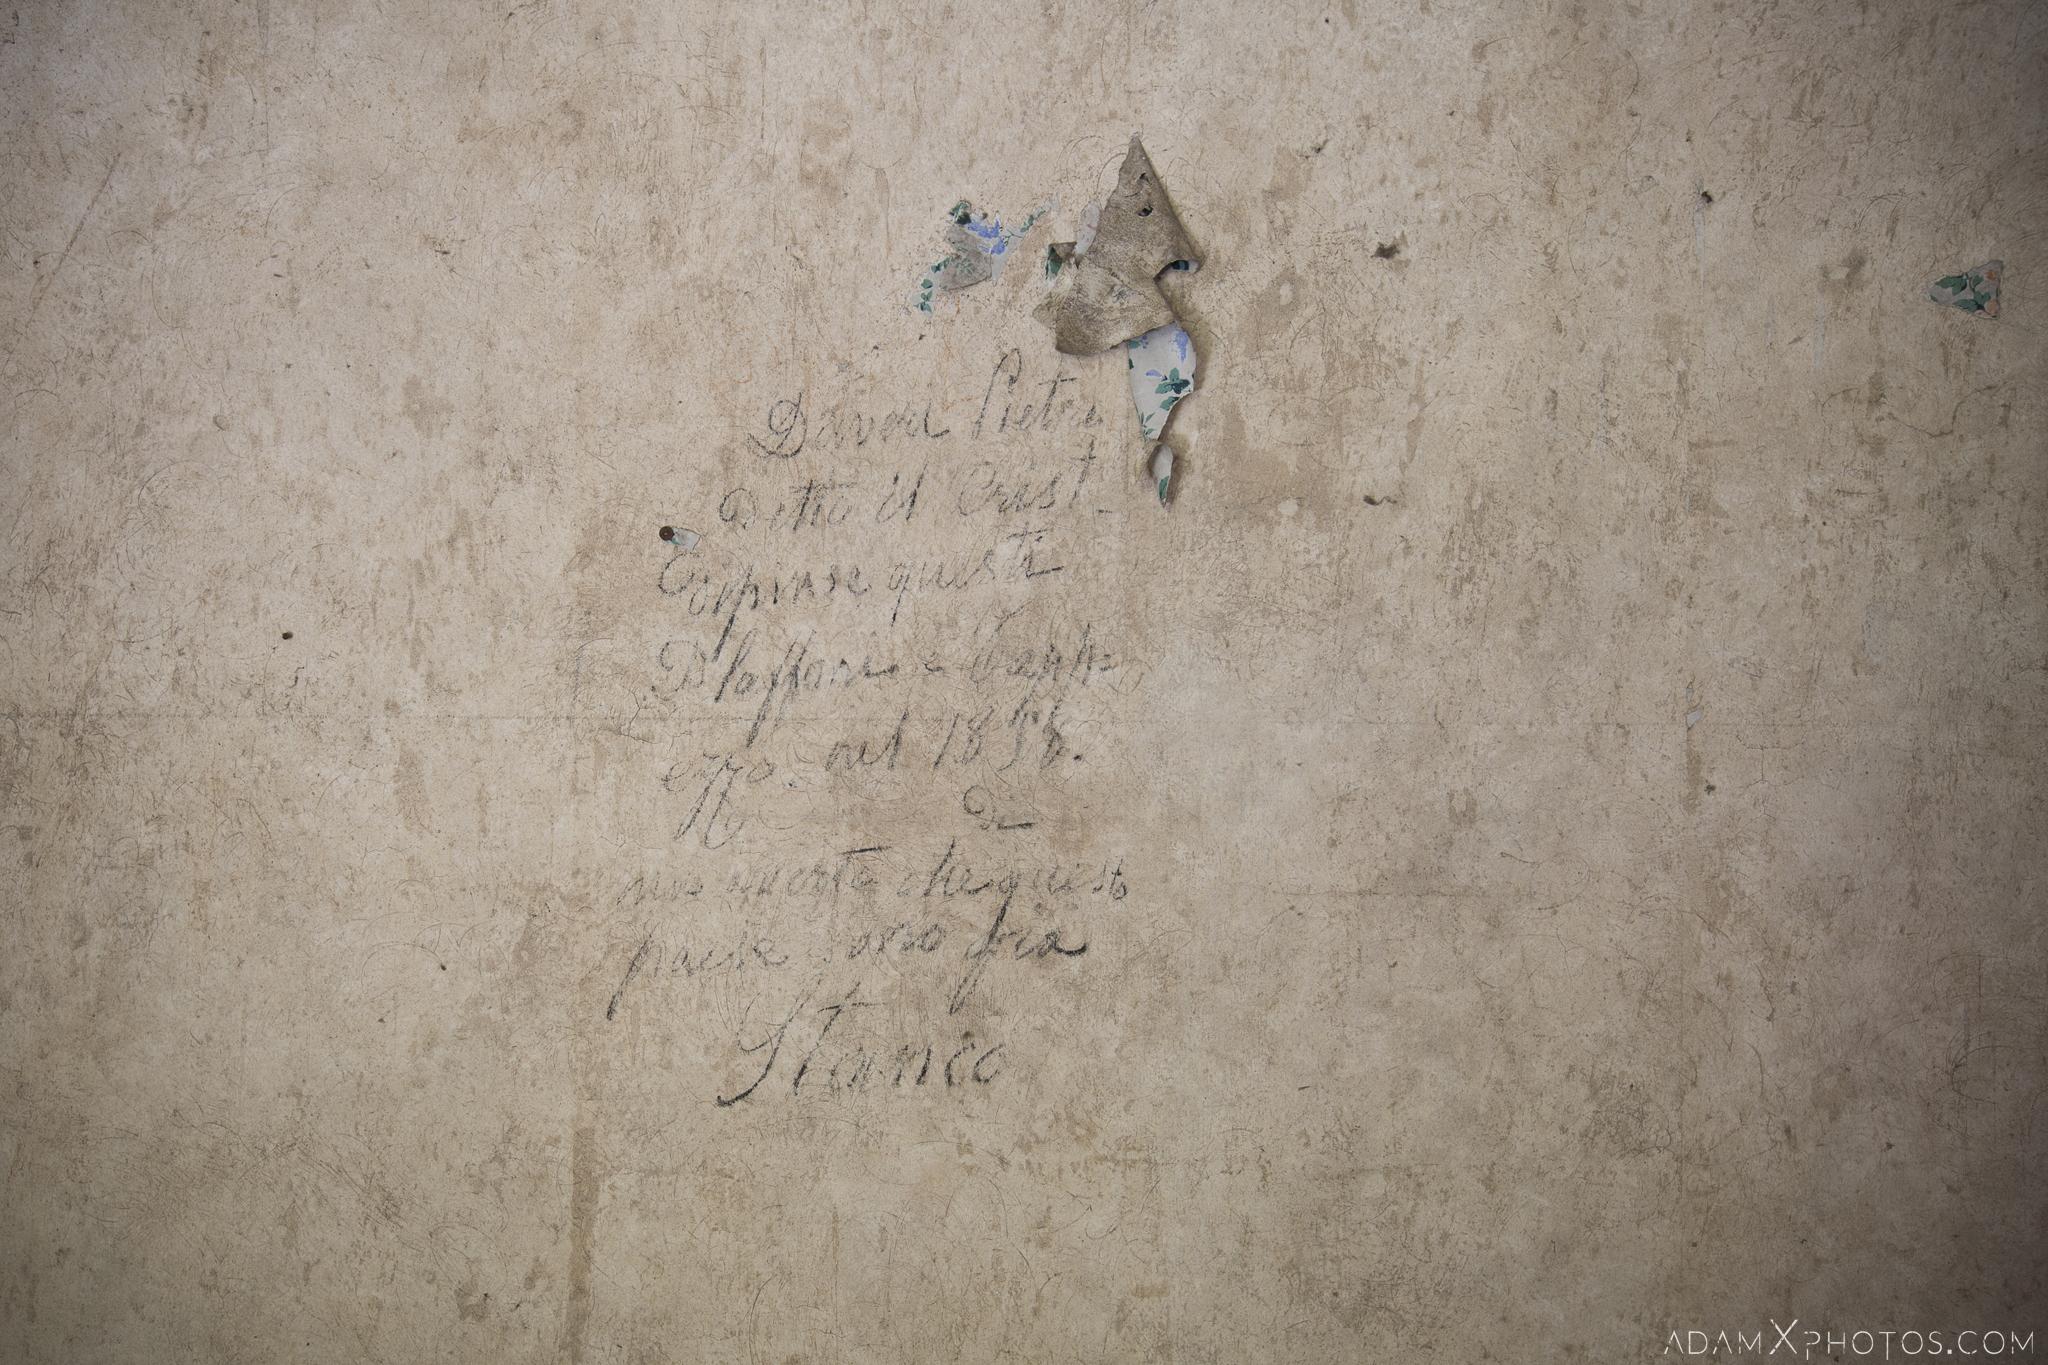 Inscription on wall Palazzo di L dei Conte M Castello di Lauriano Urbex Adam X Urban Exploration Italy Italia Access 2016 Abandoned Grand Ornate Neoclassical decay lost forgotten infiltration derelict location creepy haunting eerie